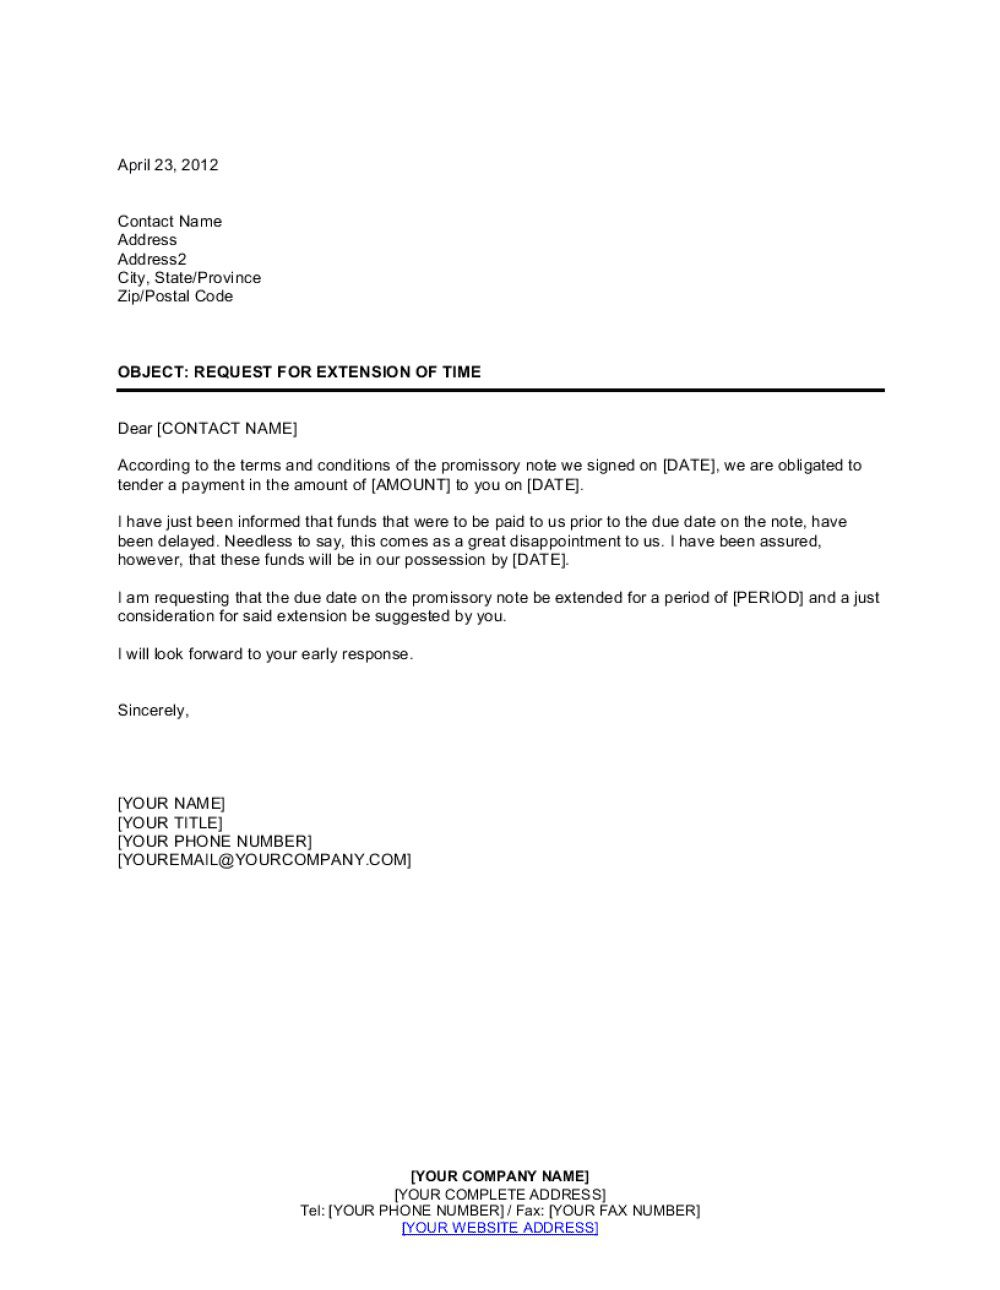 008 Impressive Blank Promissory Note Template Sample  Form Free DownloadFull